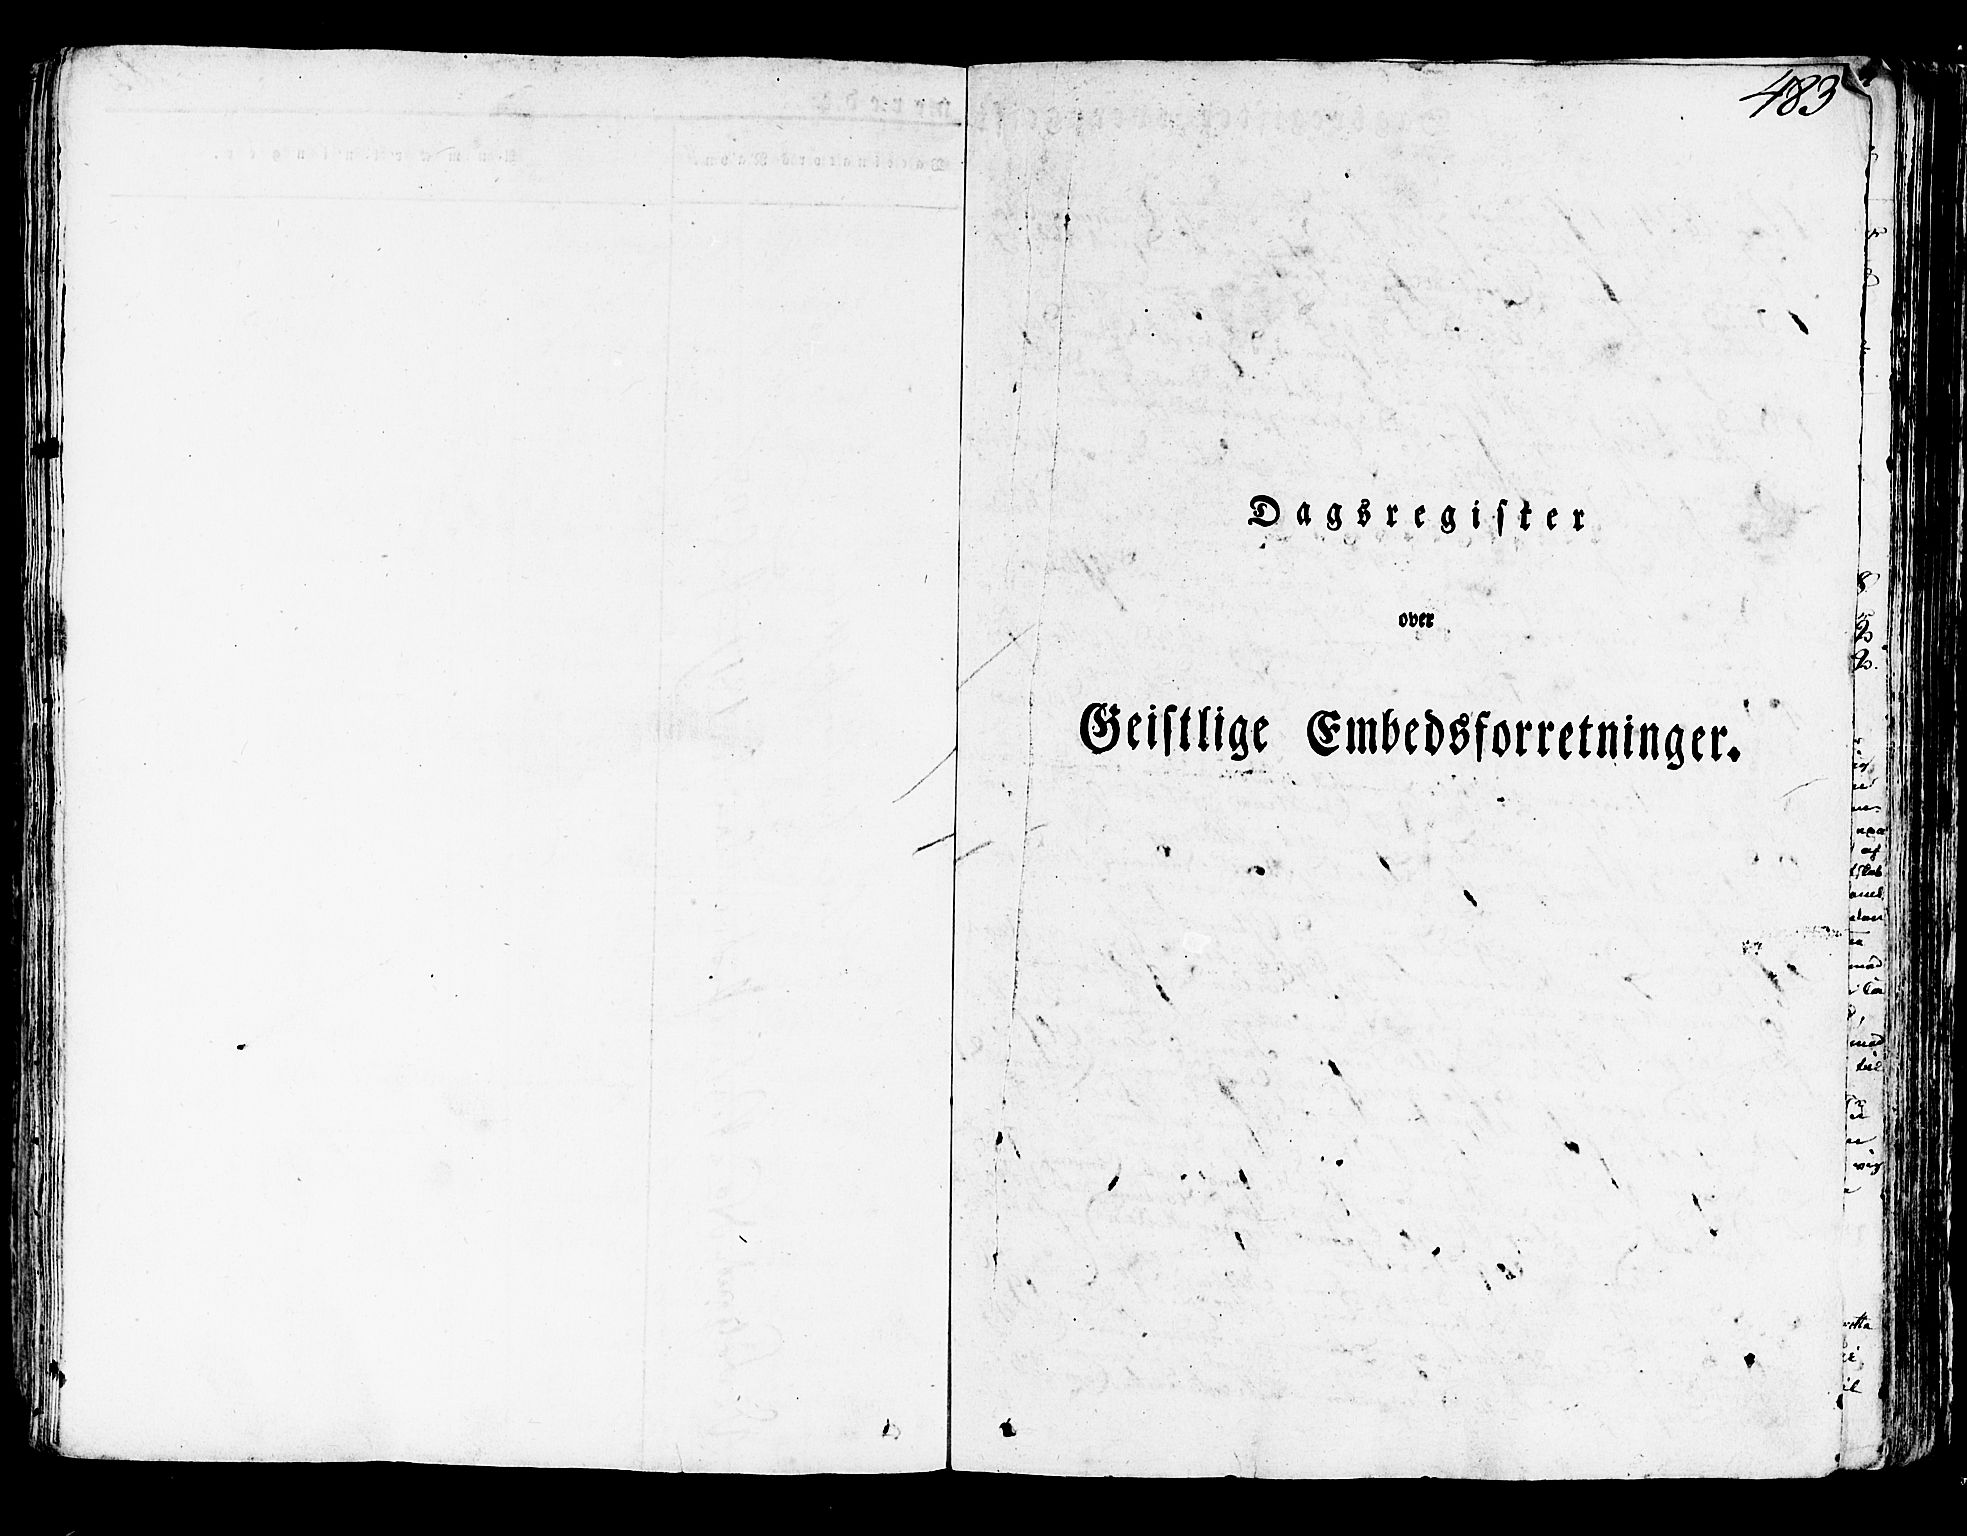 SAB, Lindås Sokneprestembete, H/Haa: Parish register (official) no. A 8, 1823-1836, p. 483